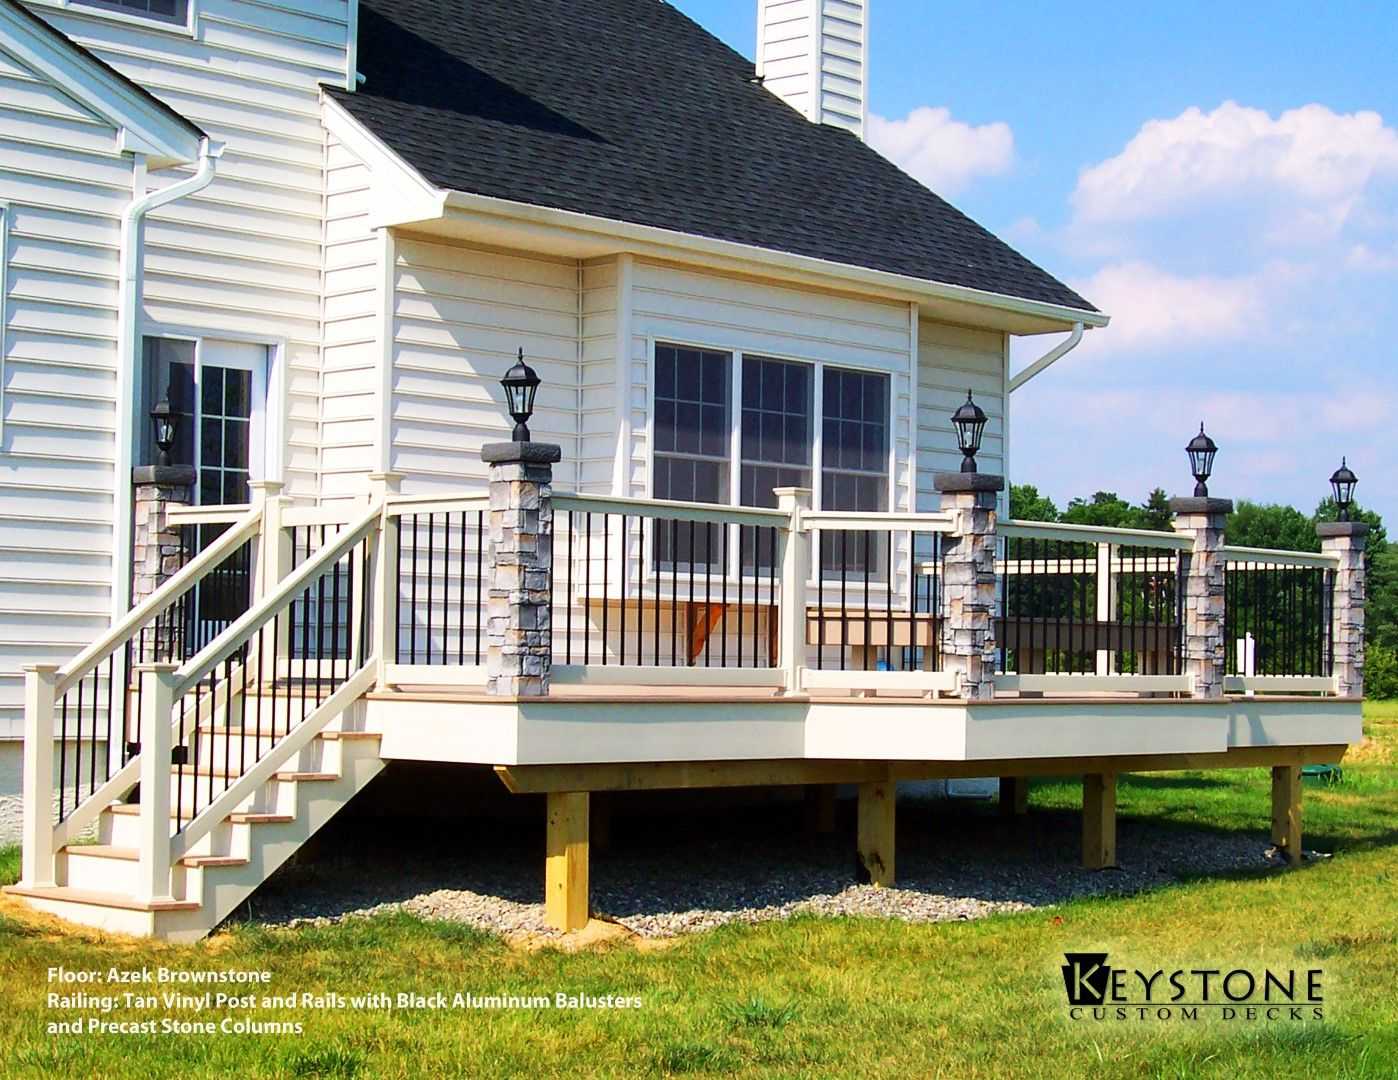 Best Azek Brownstone Decking With Tan Vinyl Post And Rails With 400 x 300